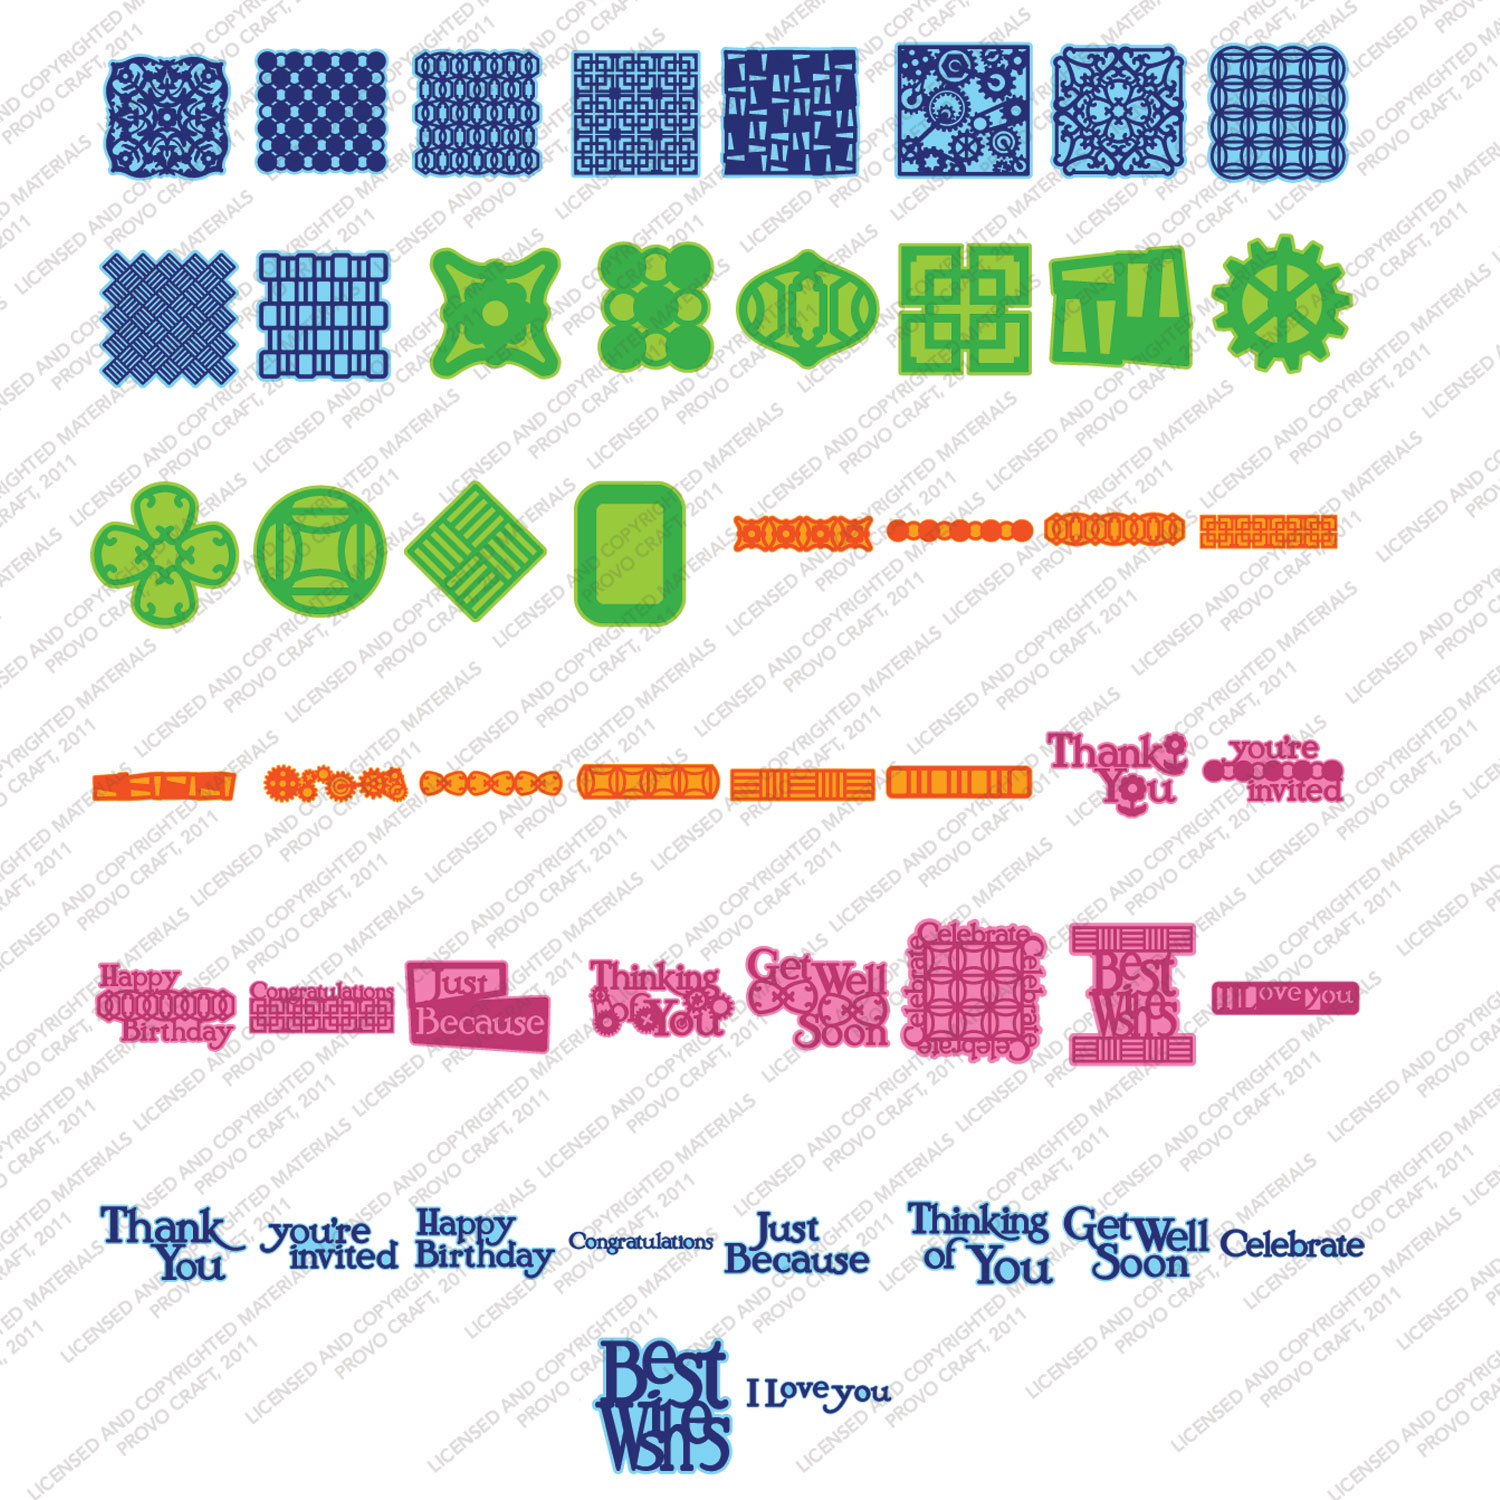 cricut paper lace Add beautiful accents to your projects with the paper lace cartridge this delightful cartridge is perfect for scrapbook layouts, cards, home décor, and other projects.